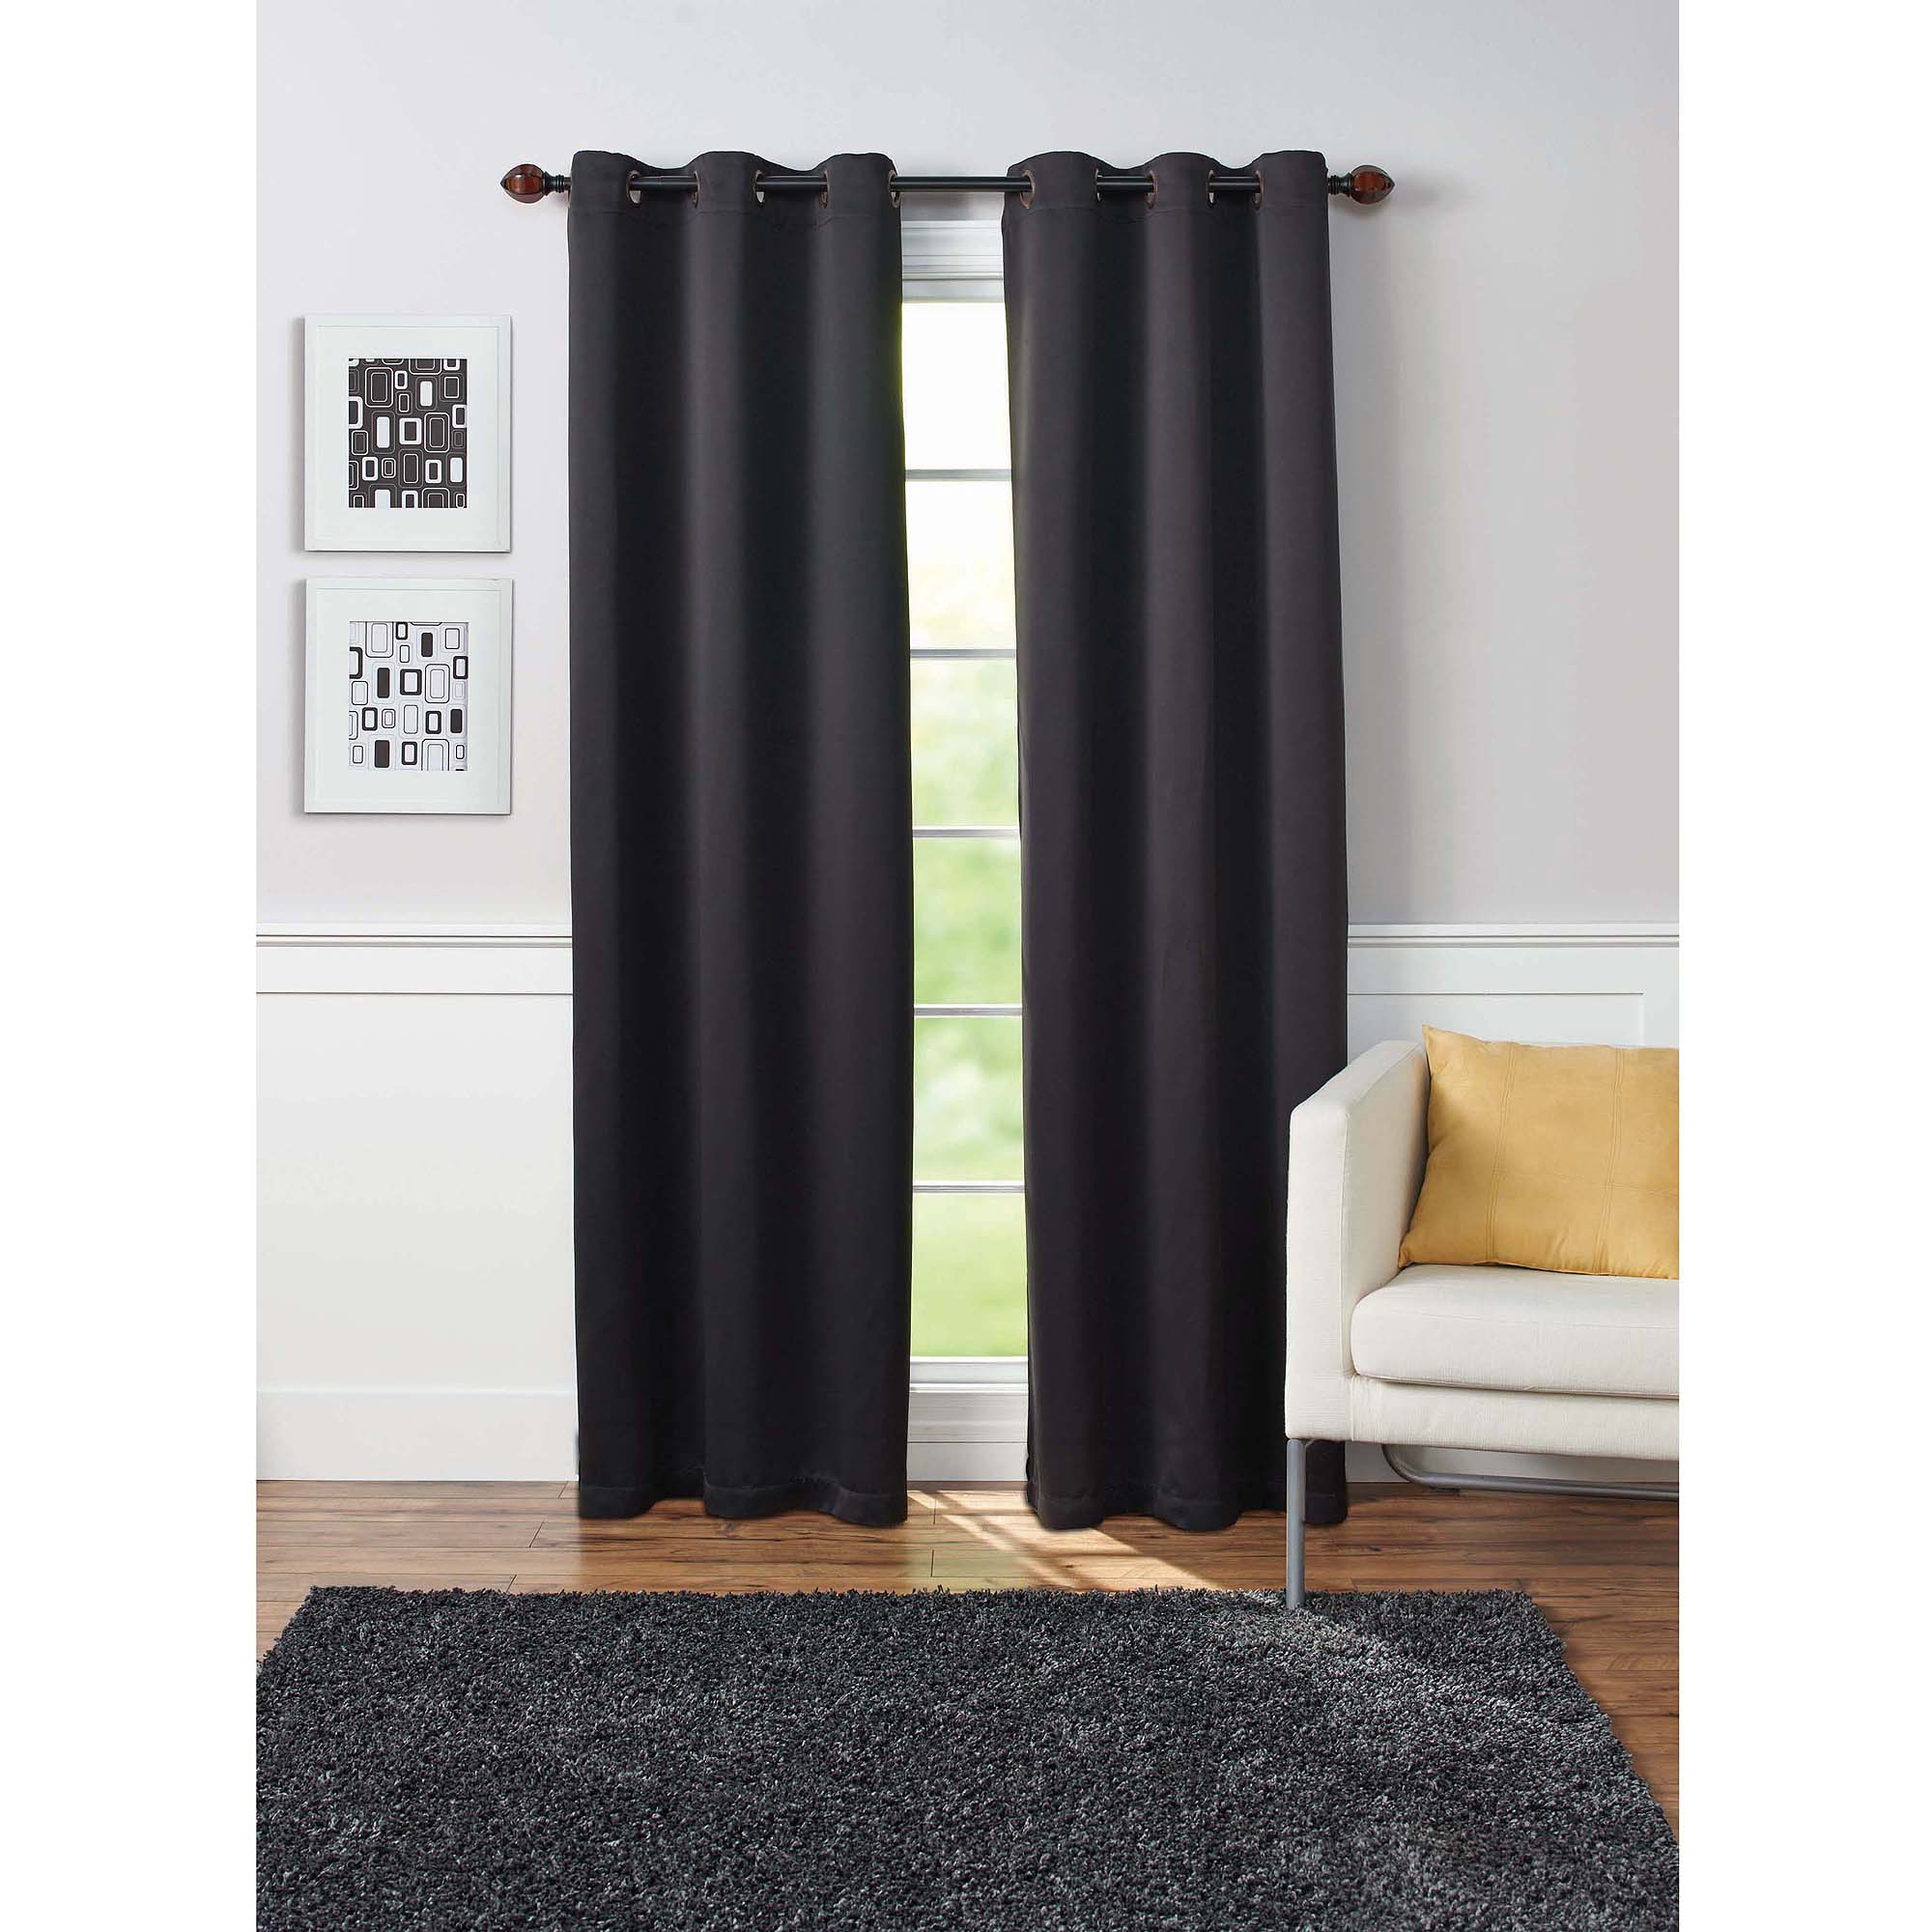 Cheap Blackout Curtains | Blackout Curtain Panels | Cheap Curtains on Sale